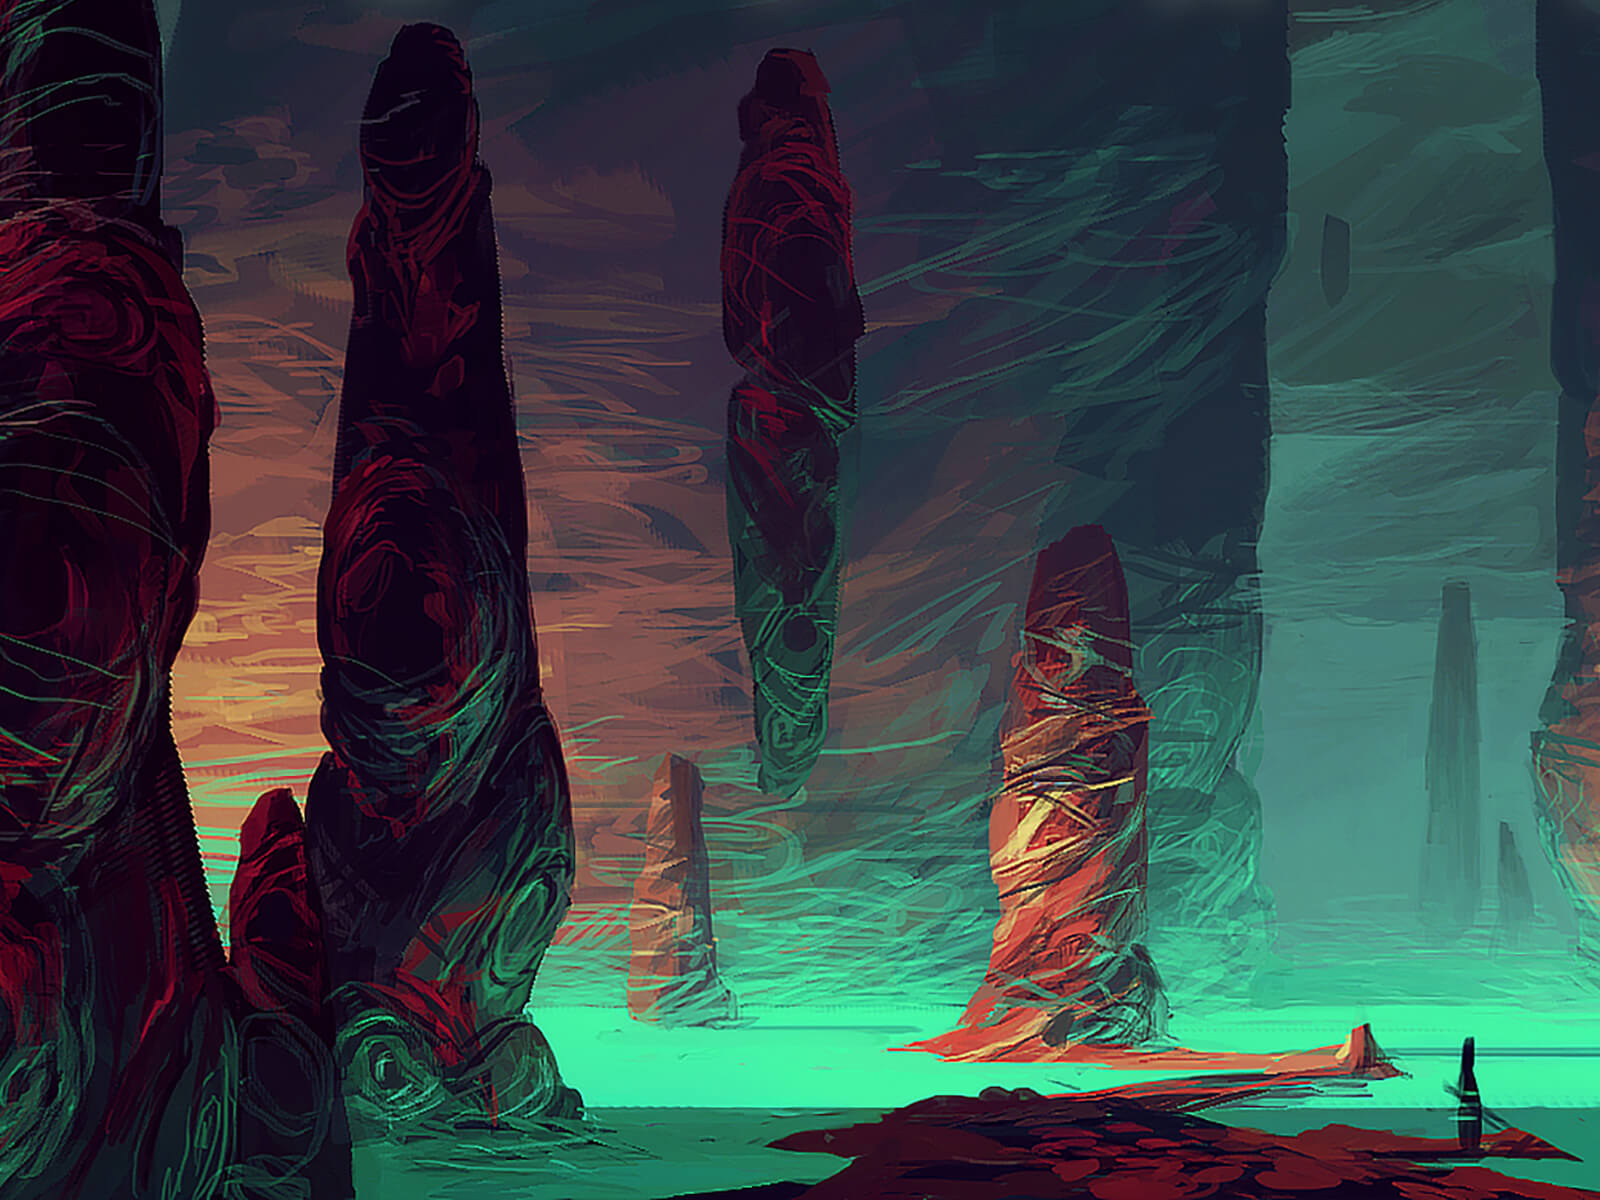 A dark alien environment with colorful rock outcroppings is lit from below by glowing aquamarine body of water.